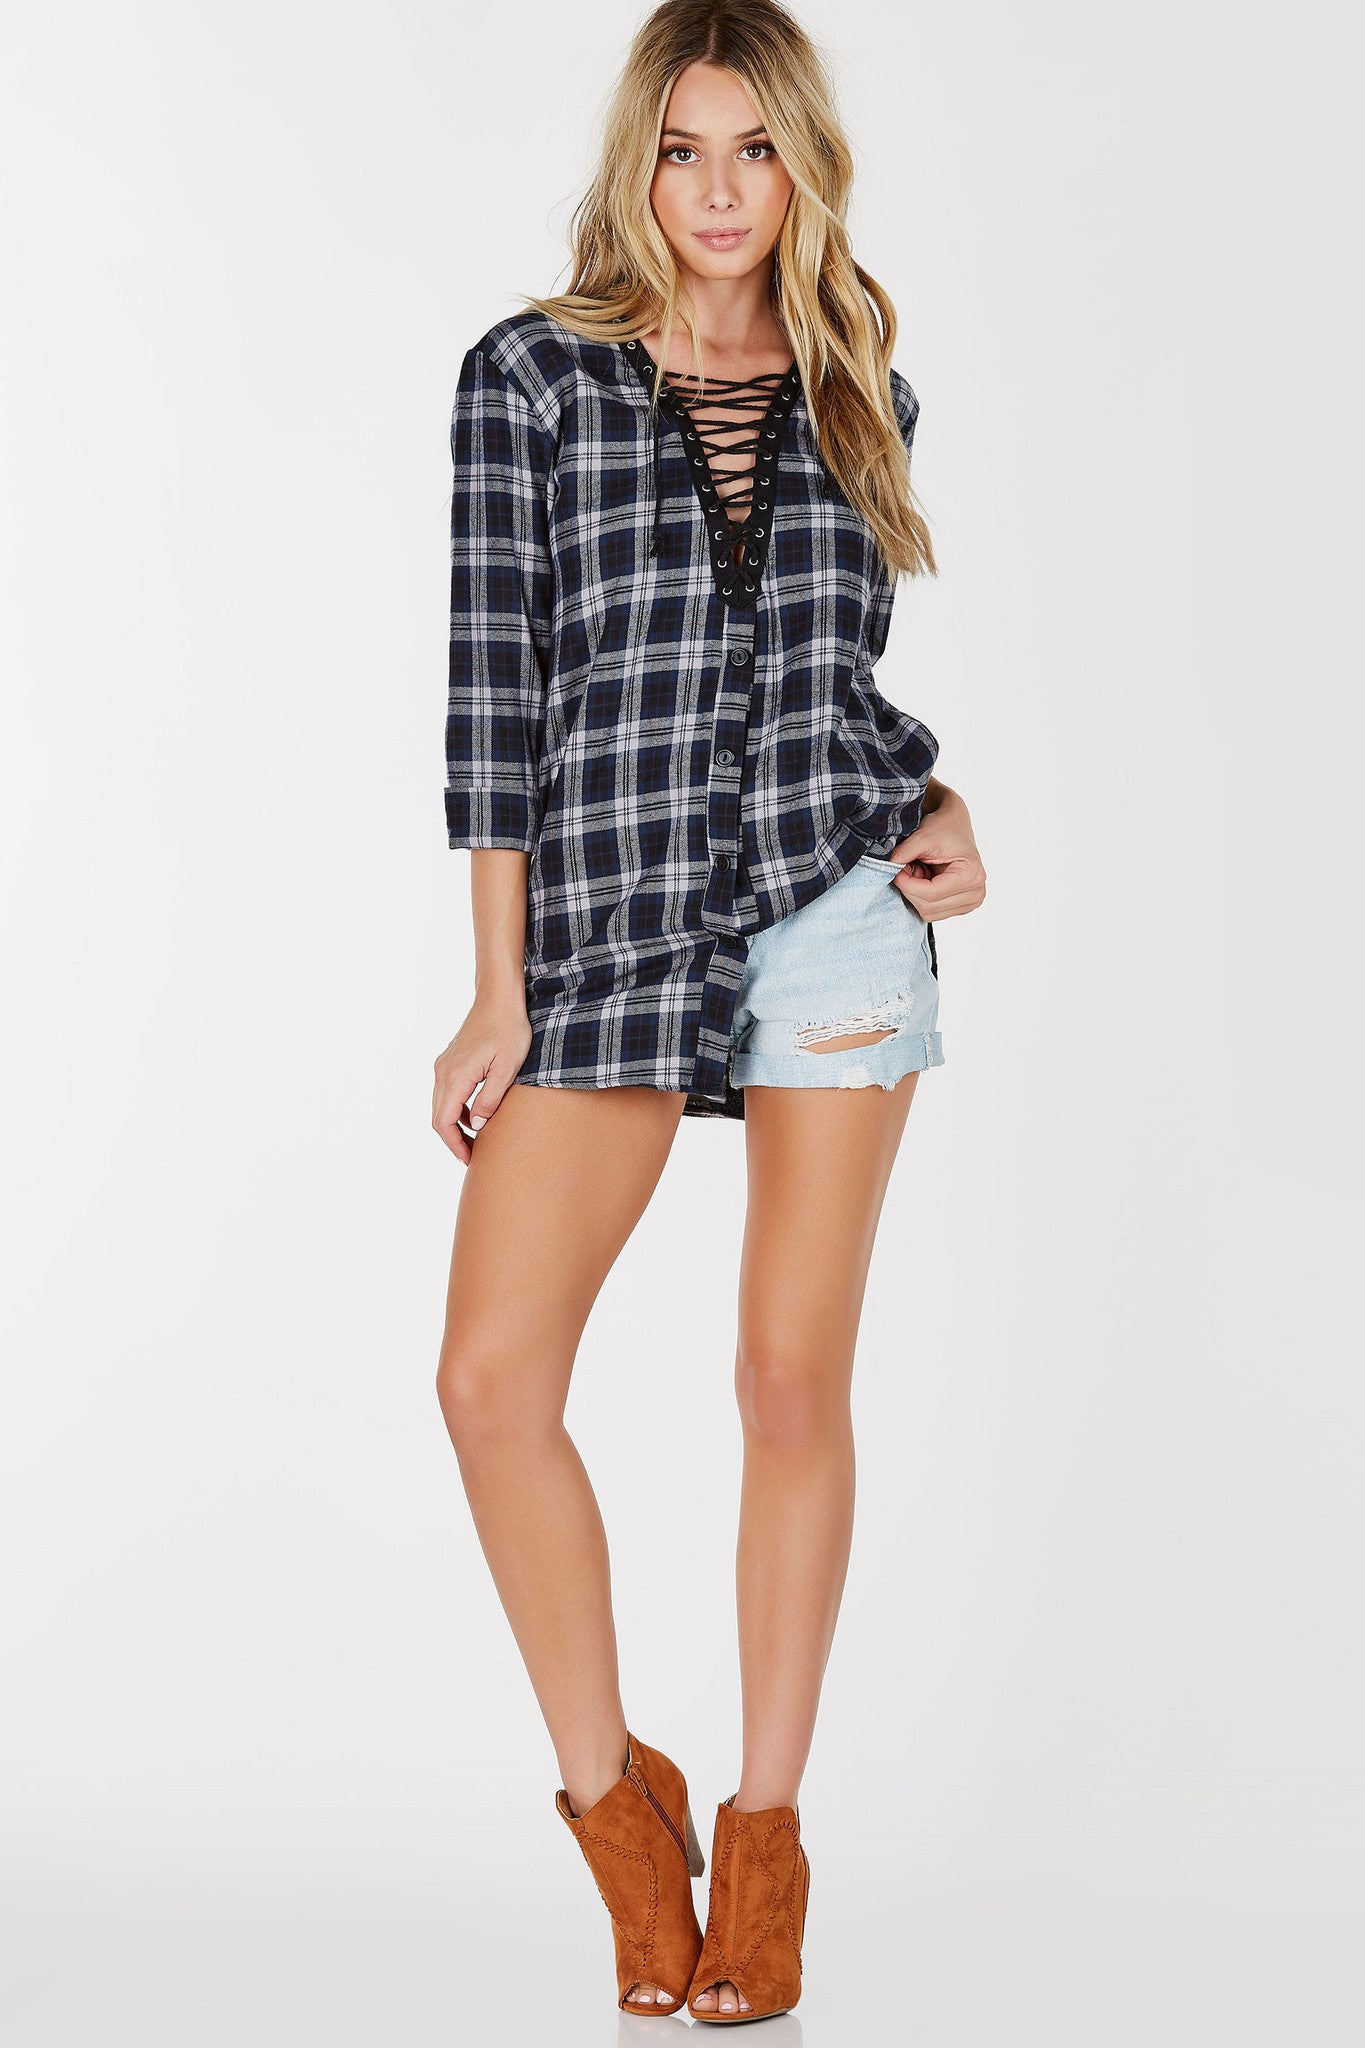 A super comfortable plaid tunic with a trendy lace up design. Features faux buttons below the neckline for a flannel vibe. Soft rounded hem brings a casual vibe. Style with sneakers and a denim jacket!